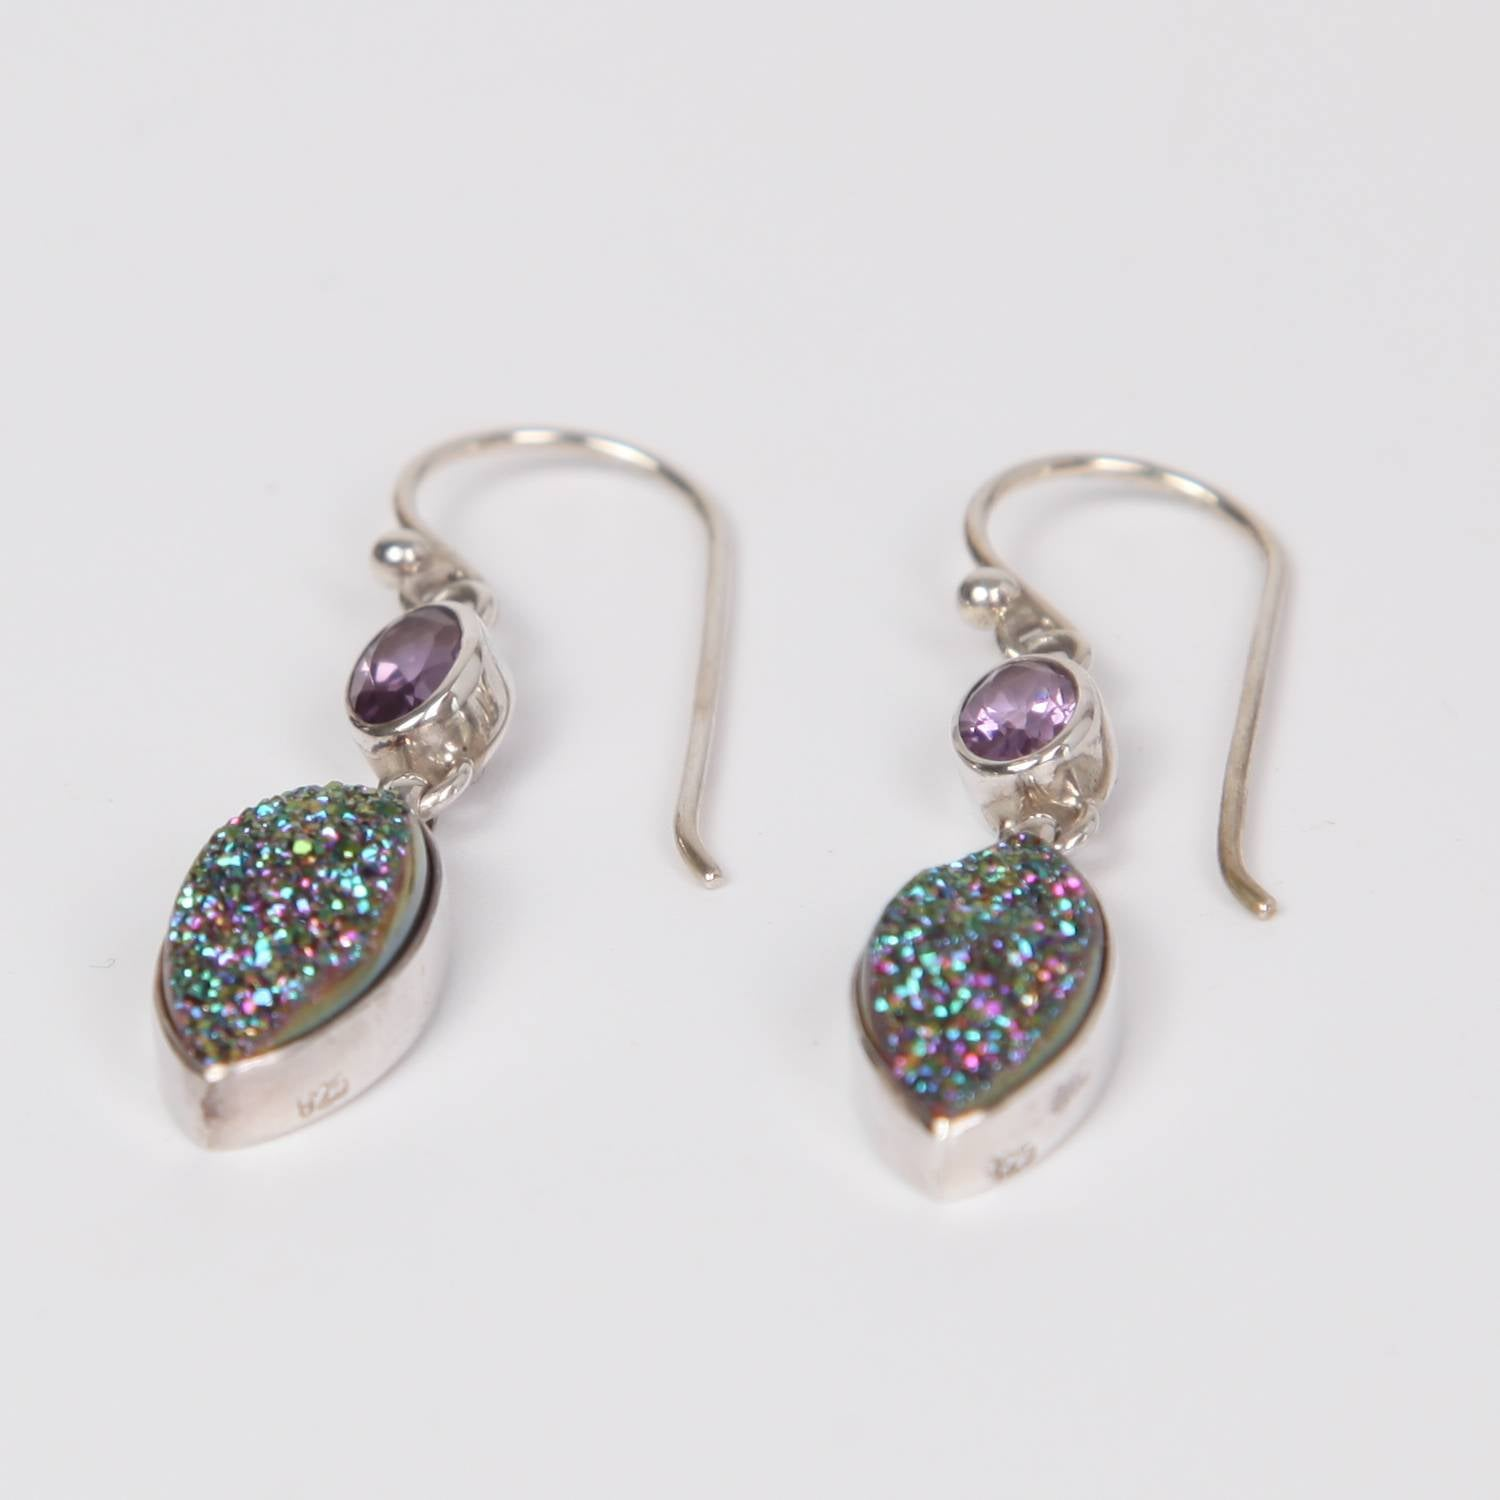 Drusy Quartz Sterling Silver Earrings with Amethyst